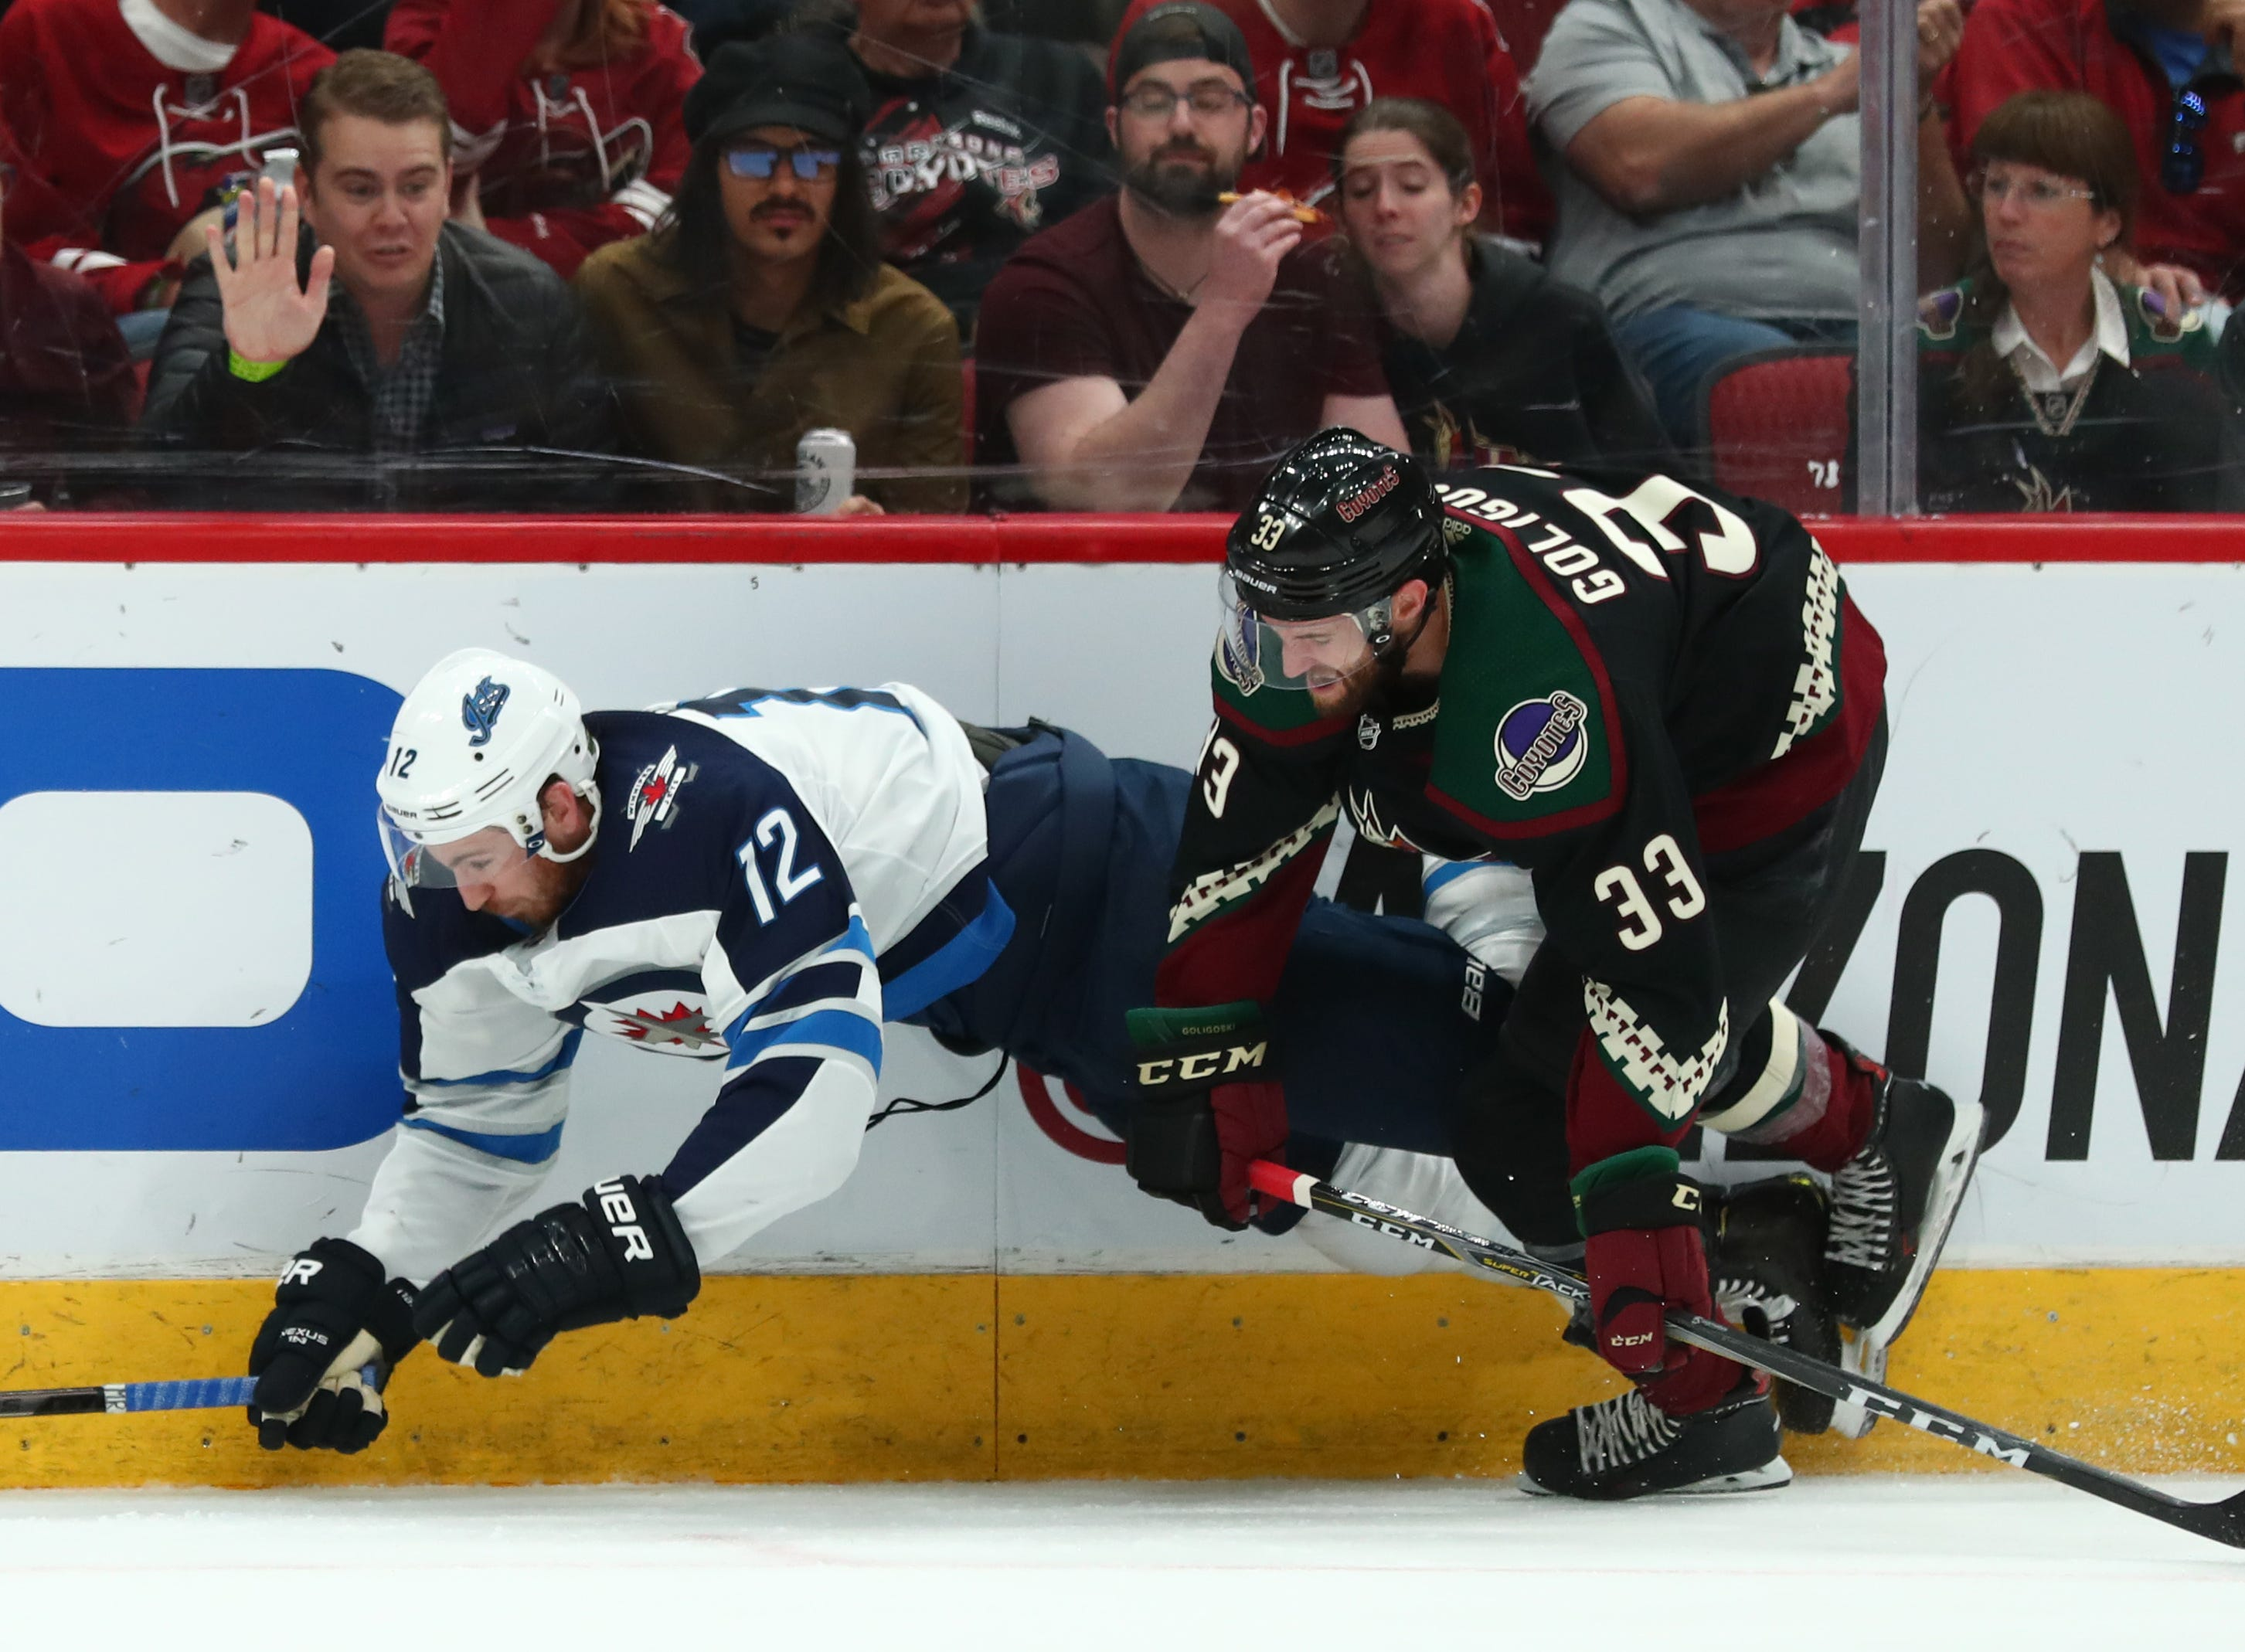 Apr 6, 2019; Glendale, AZ, USA; Winnipeg Jets center Kevin Hayes (12) falls as he is checked into the boards by Arizona Coyotes defenseman Alex Goligoski (33) in the second period at Gila River Arena. Mandatory Credit: Mark J. Rebilas-USA TODAY Sports